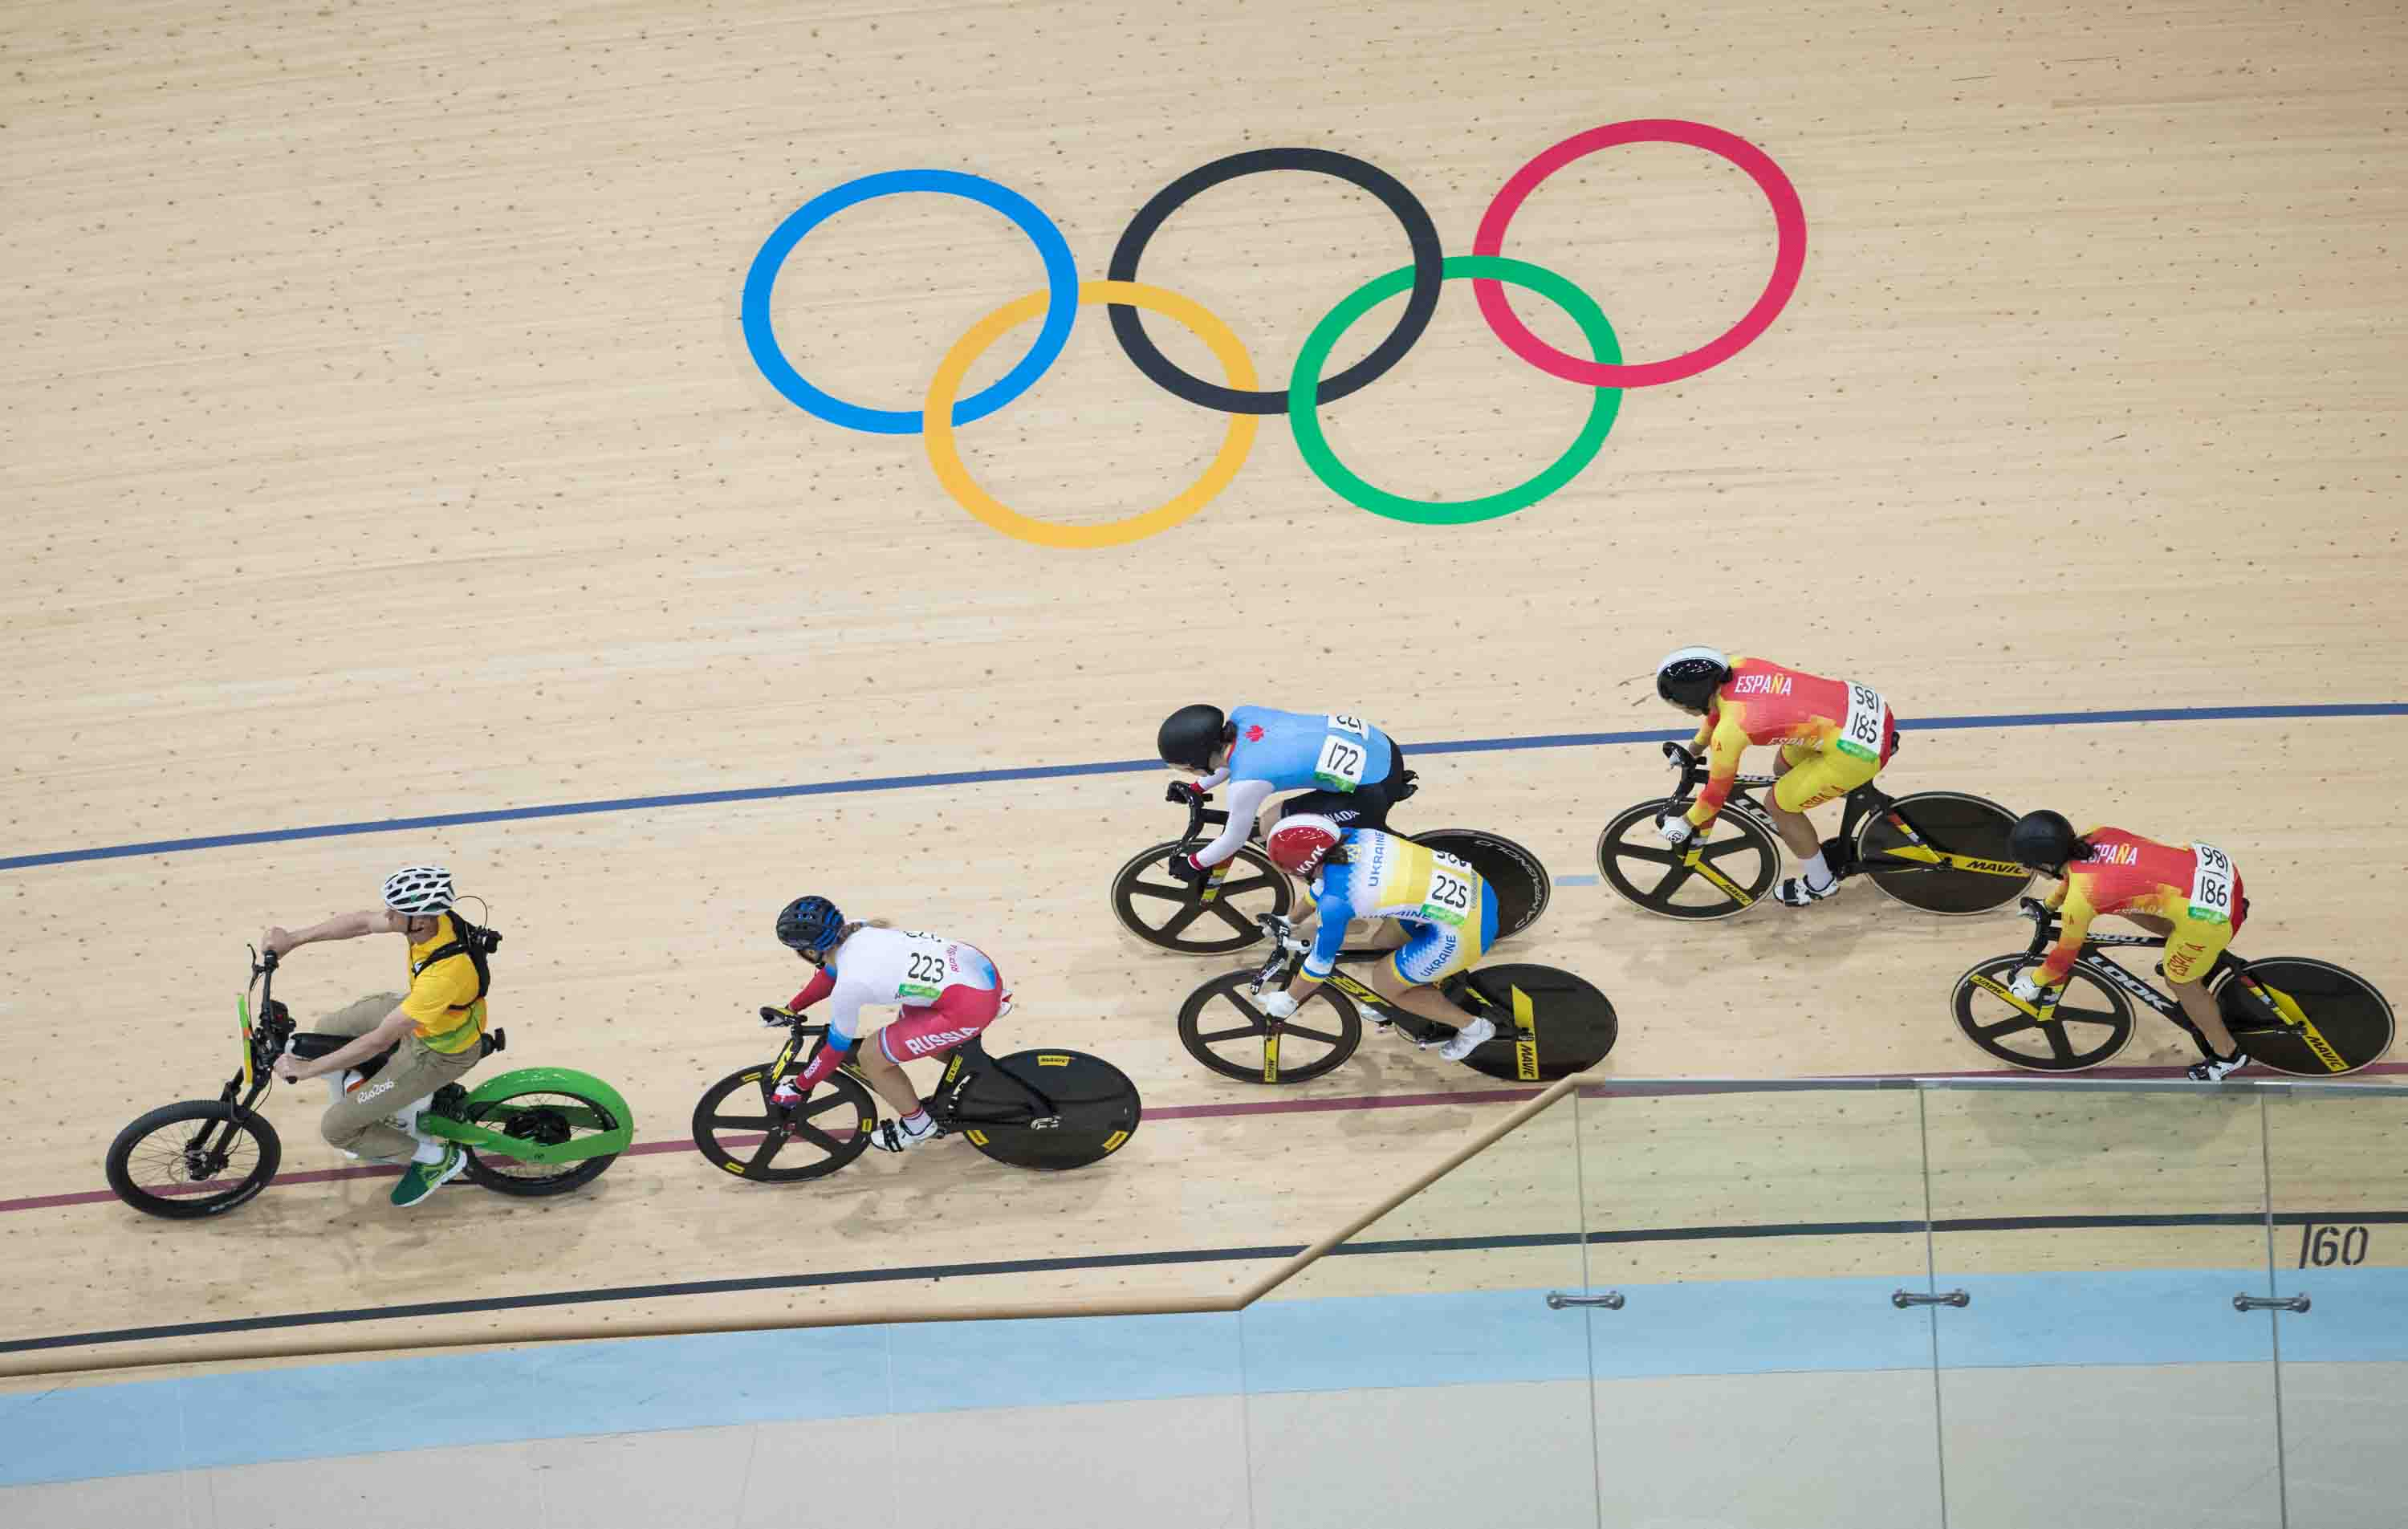 Canada's Monique Sullivan competes in the Women's Keirin during track cycling at the velodrome at the Olympic games in Rio de Janeiro, Brazil.